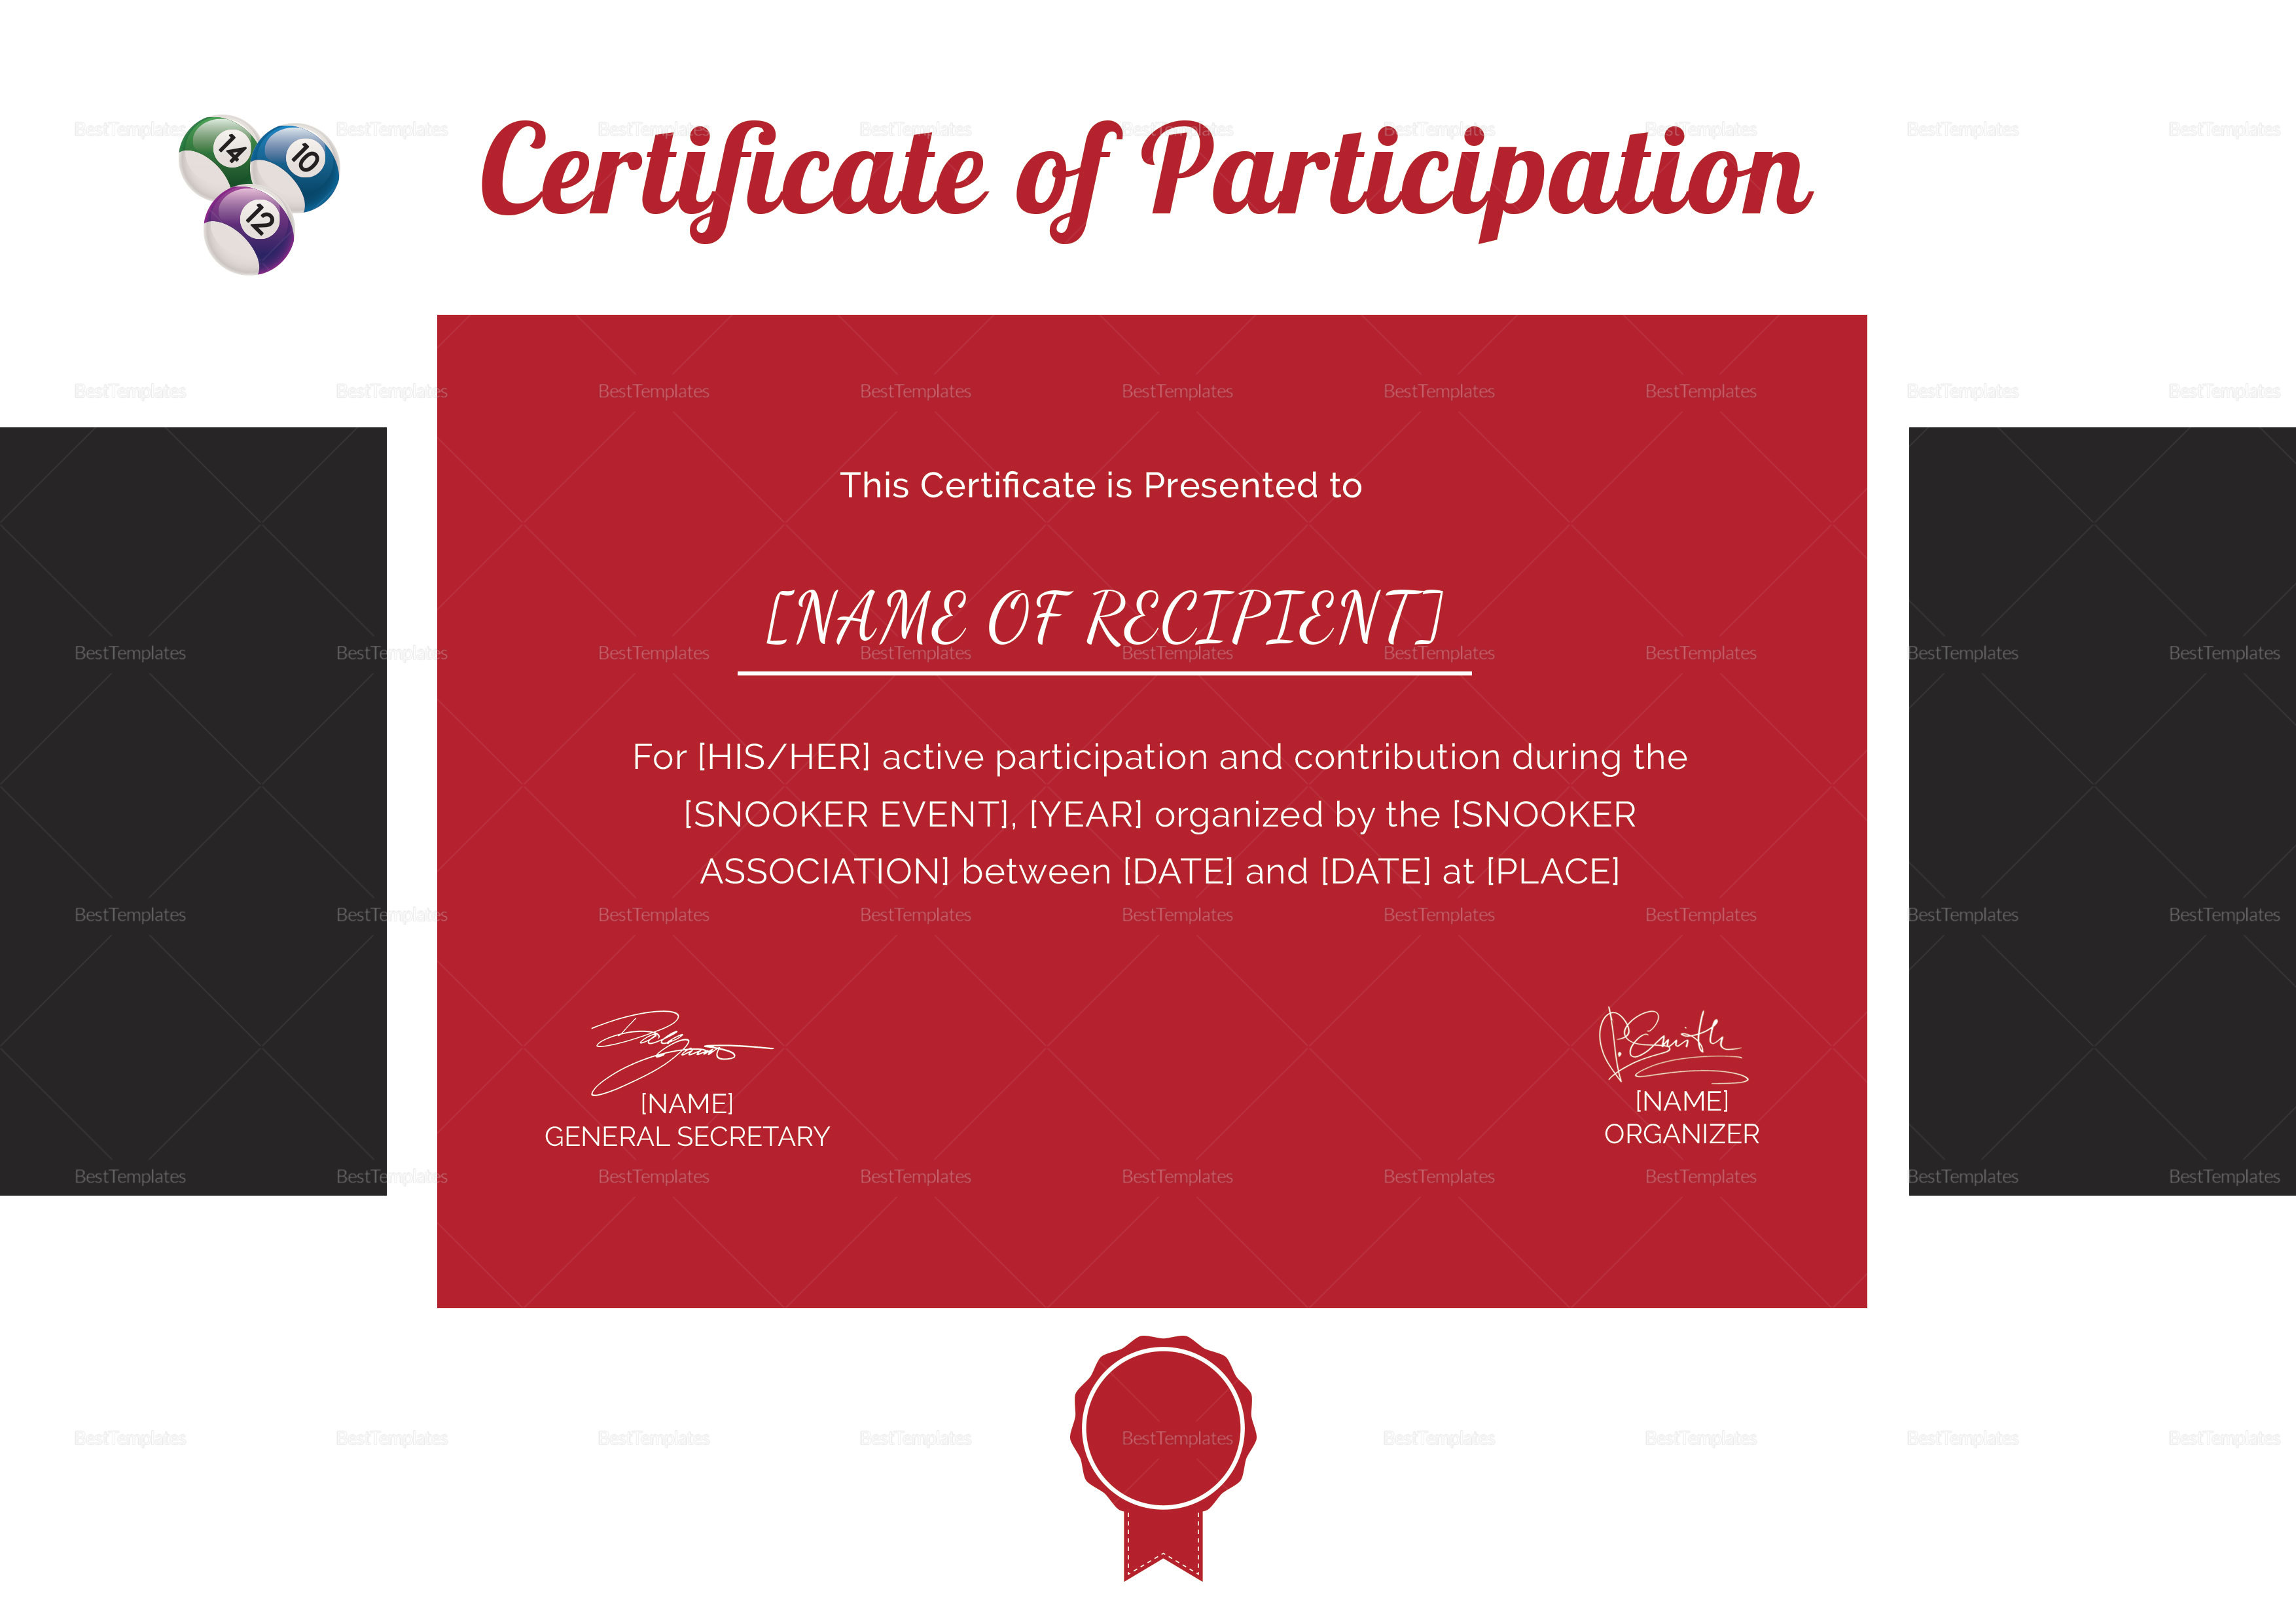 Participation Certificate for Snooker